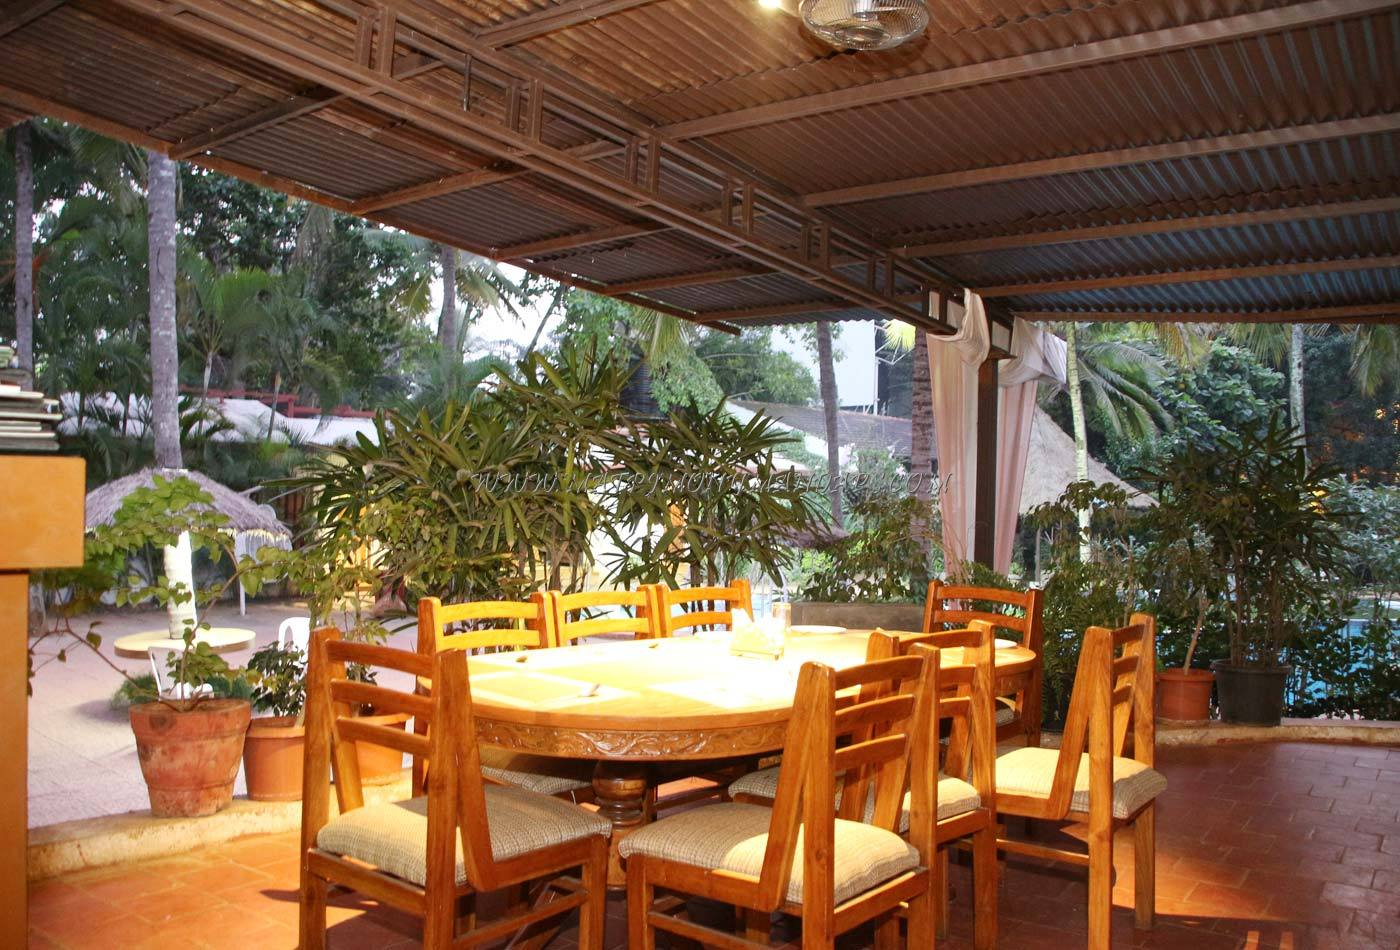 Find the availability of the Holiday Village Open Lawn in kanakapura road, Bangalore and avail special offers